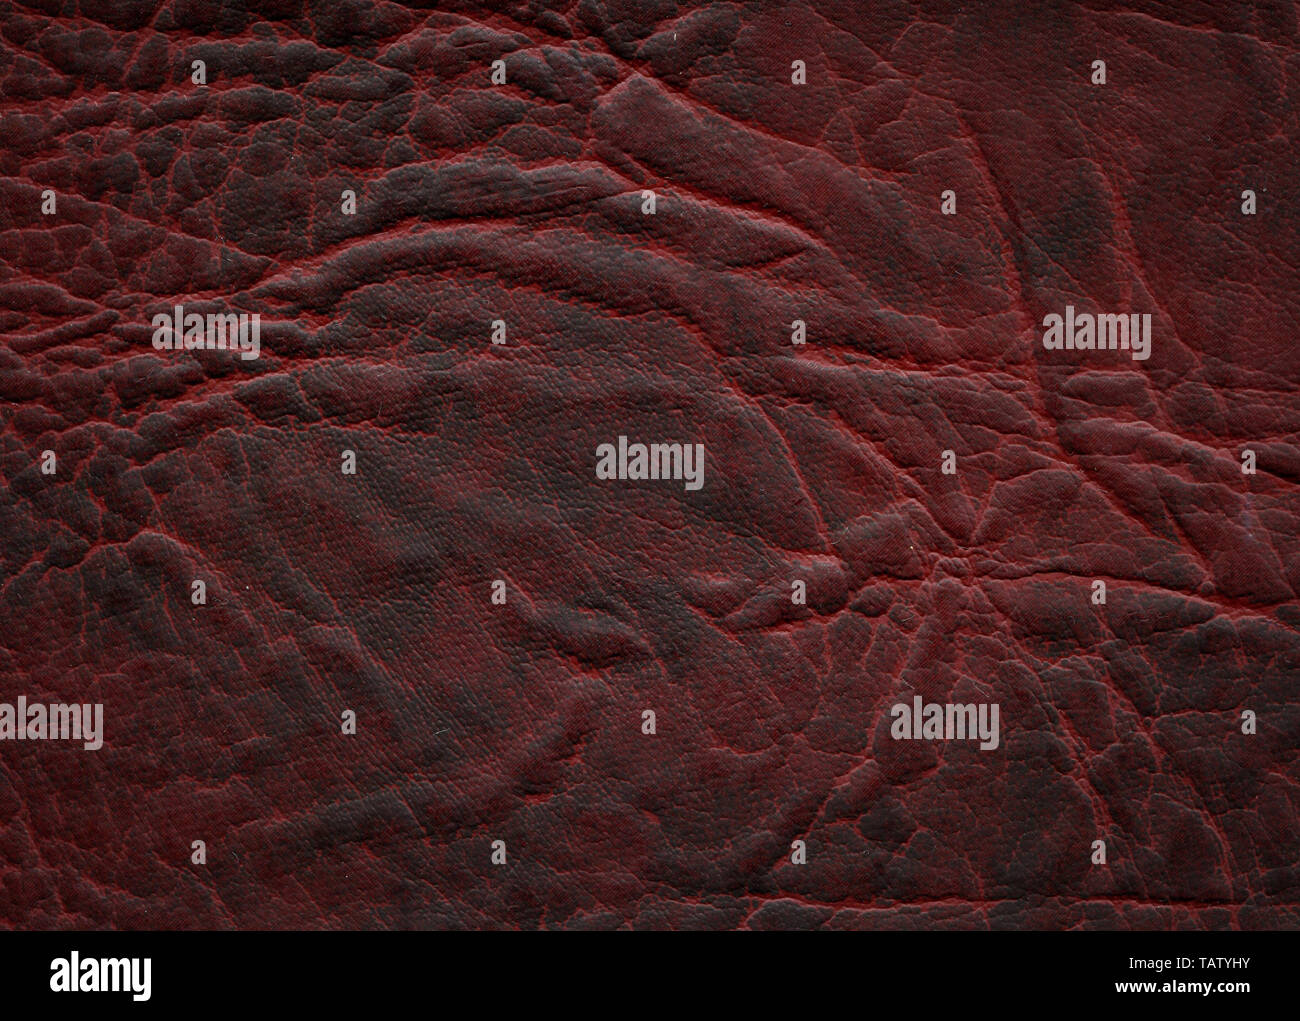 An image of a nice leather background. Cowhide texture. - Stock Image